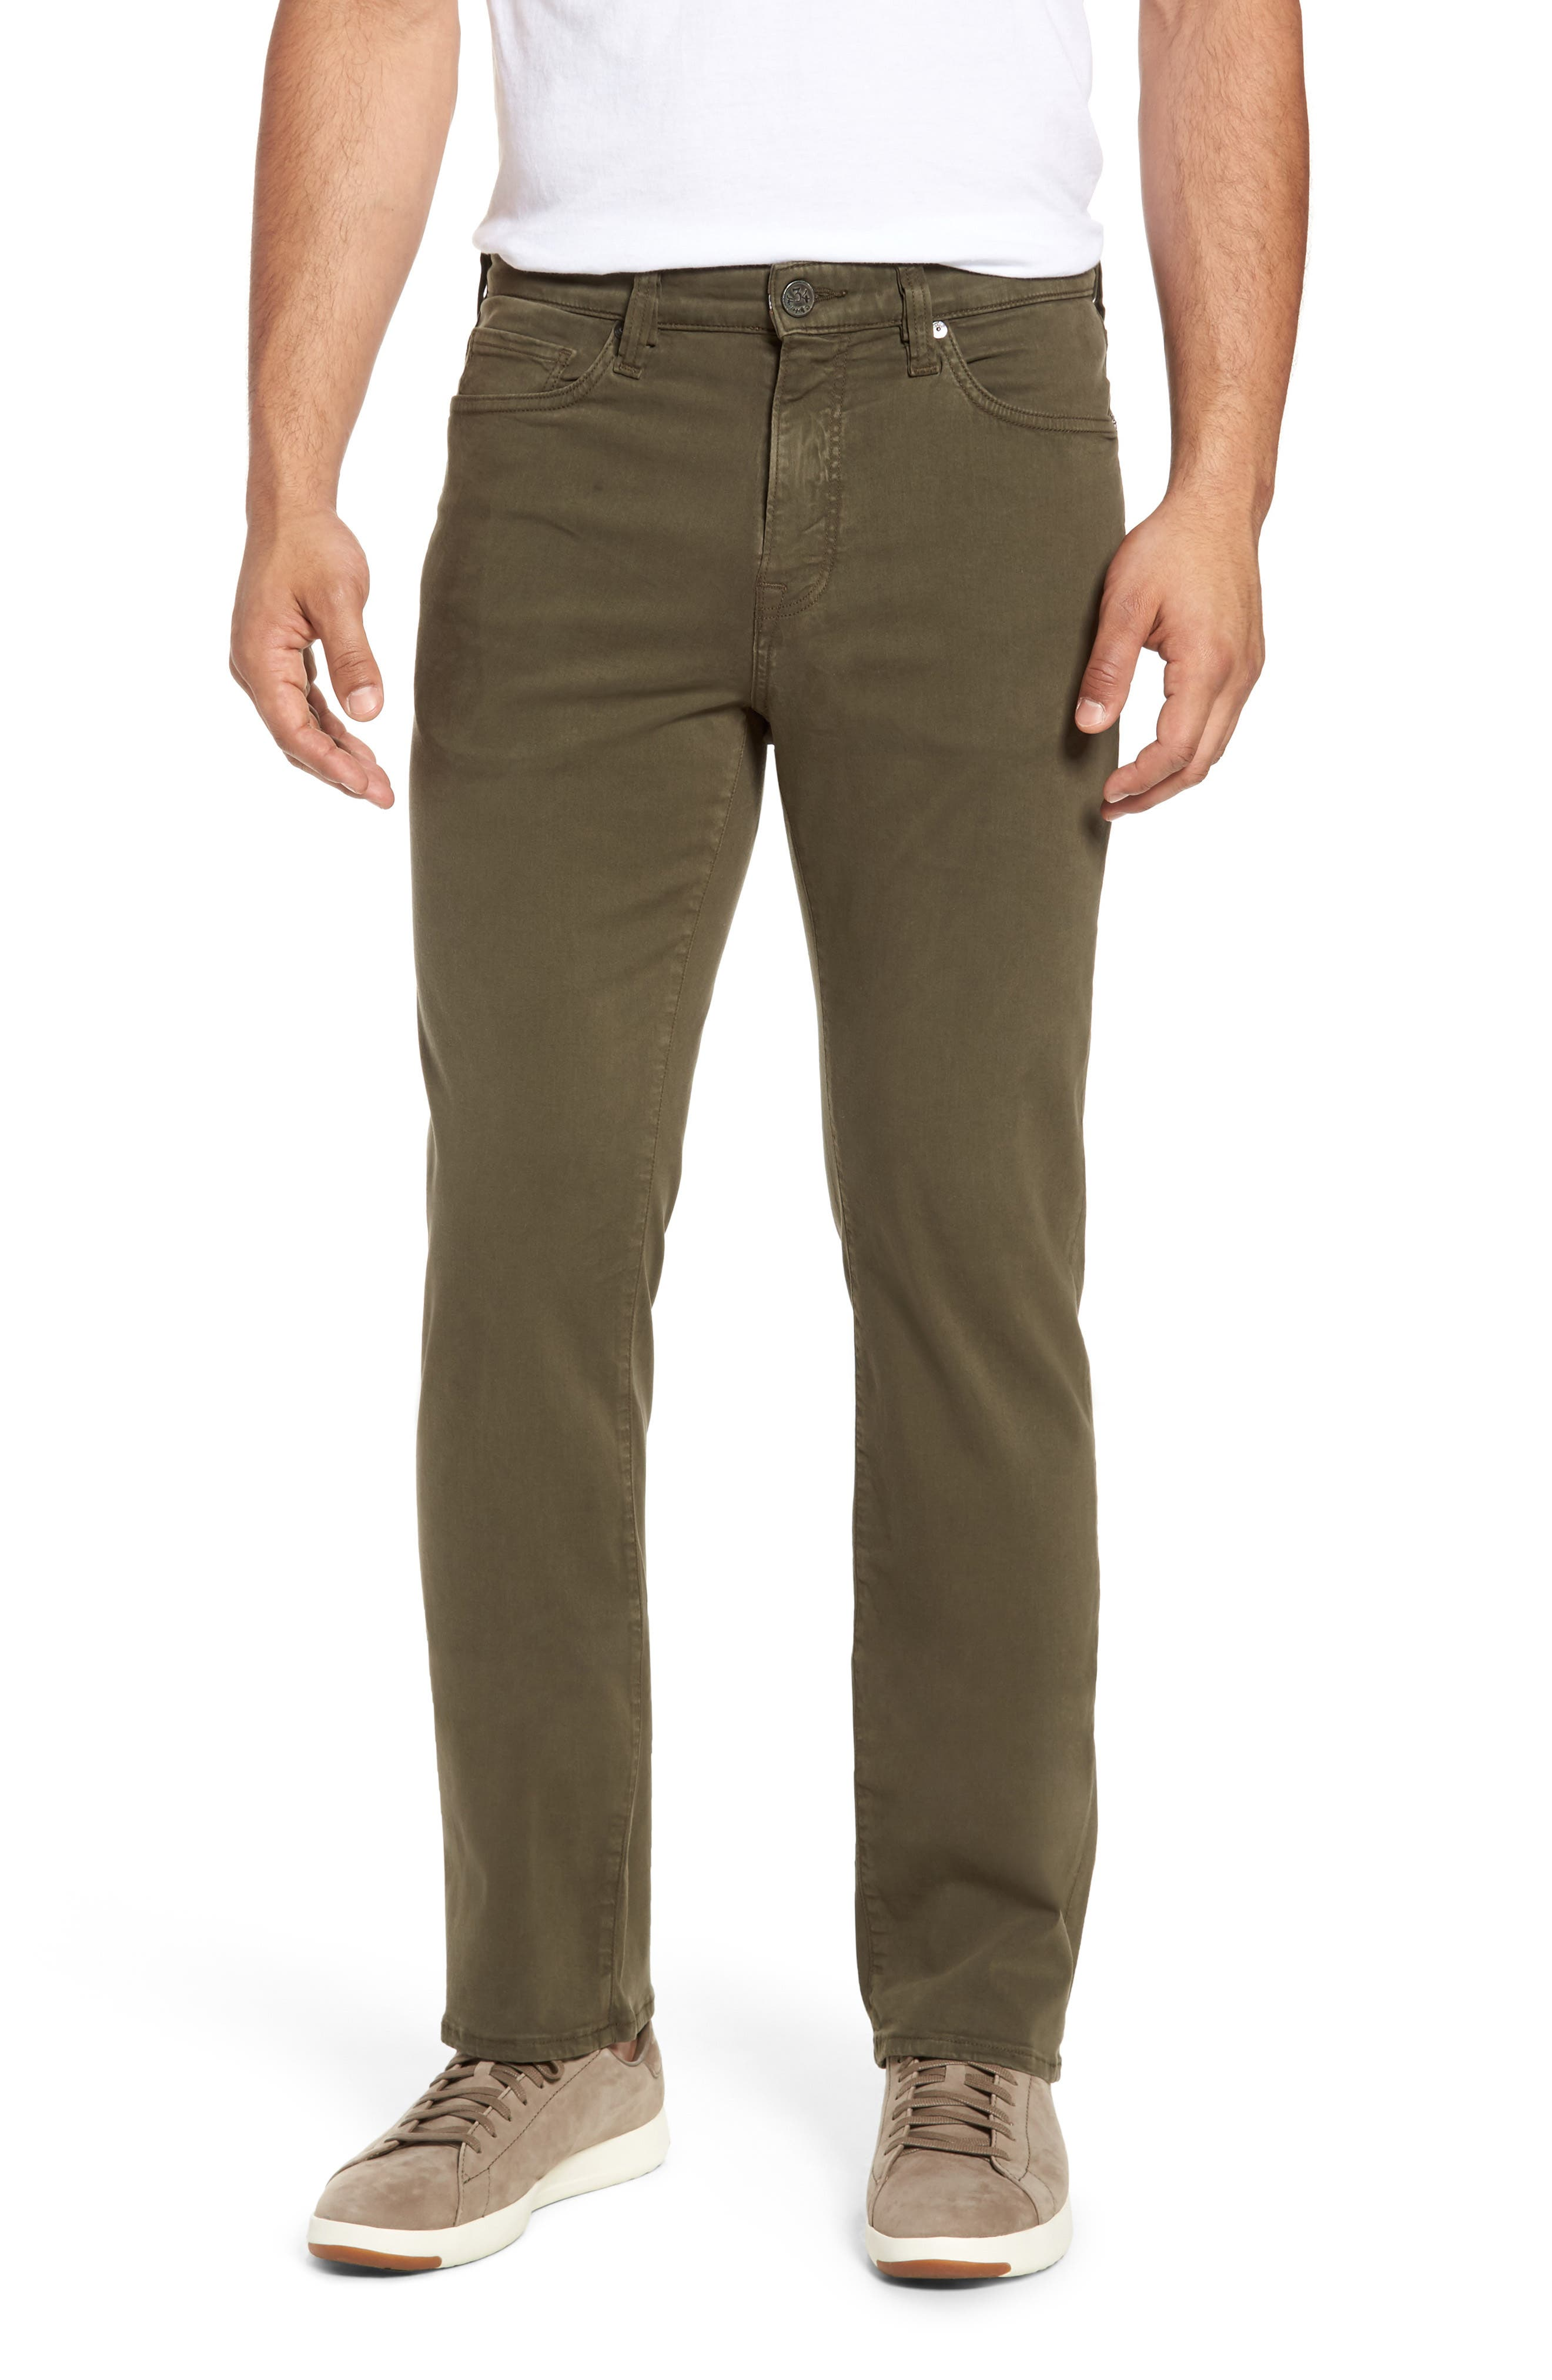 Charisma Relaxed Fit Pants,                         Main,                         color, 300